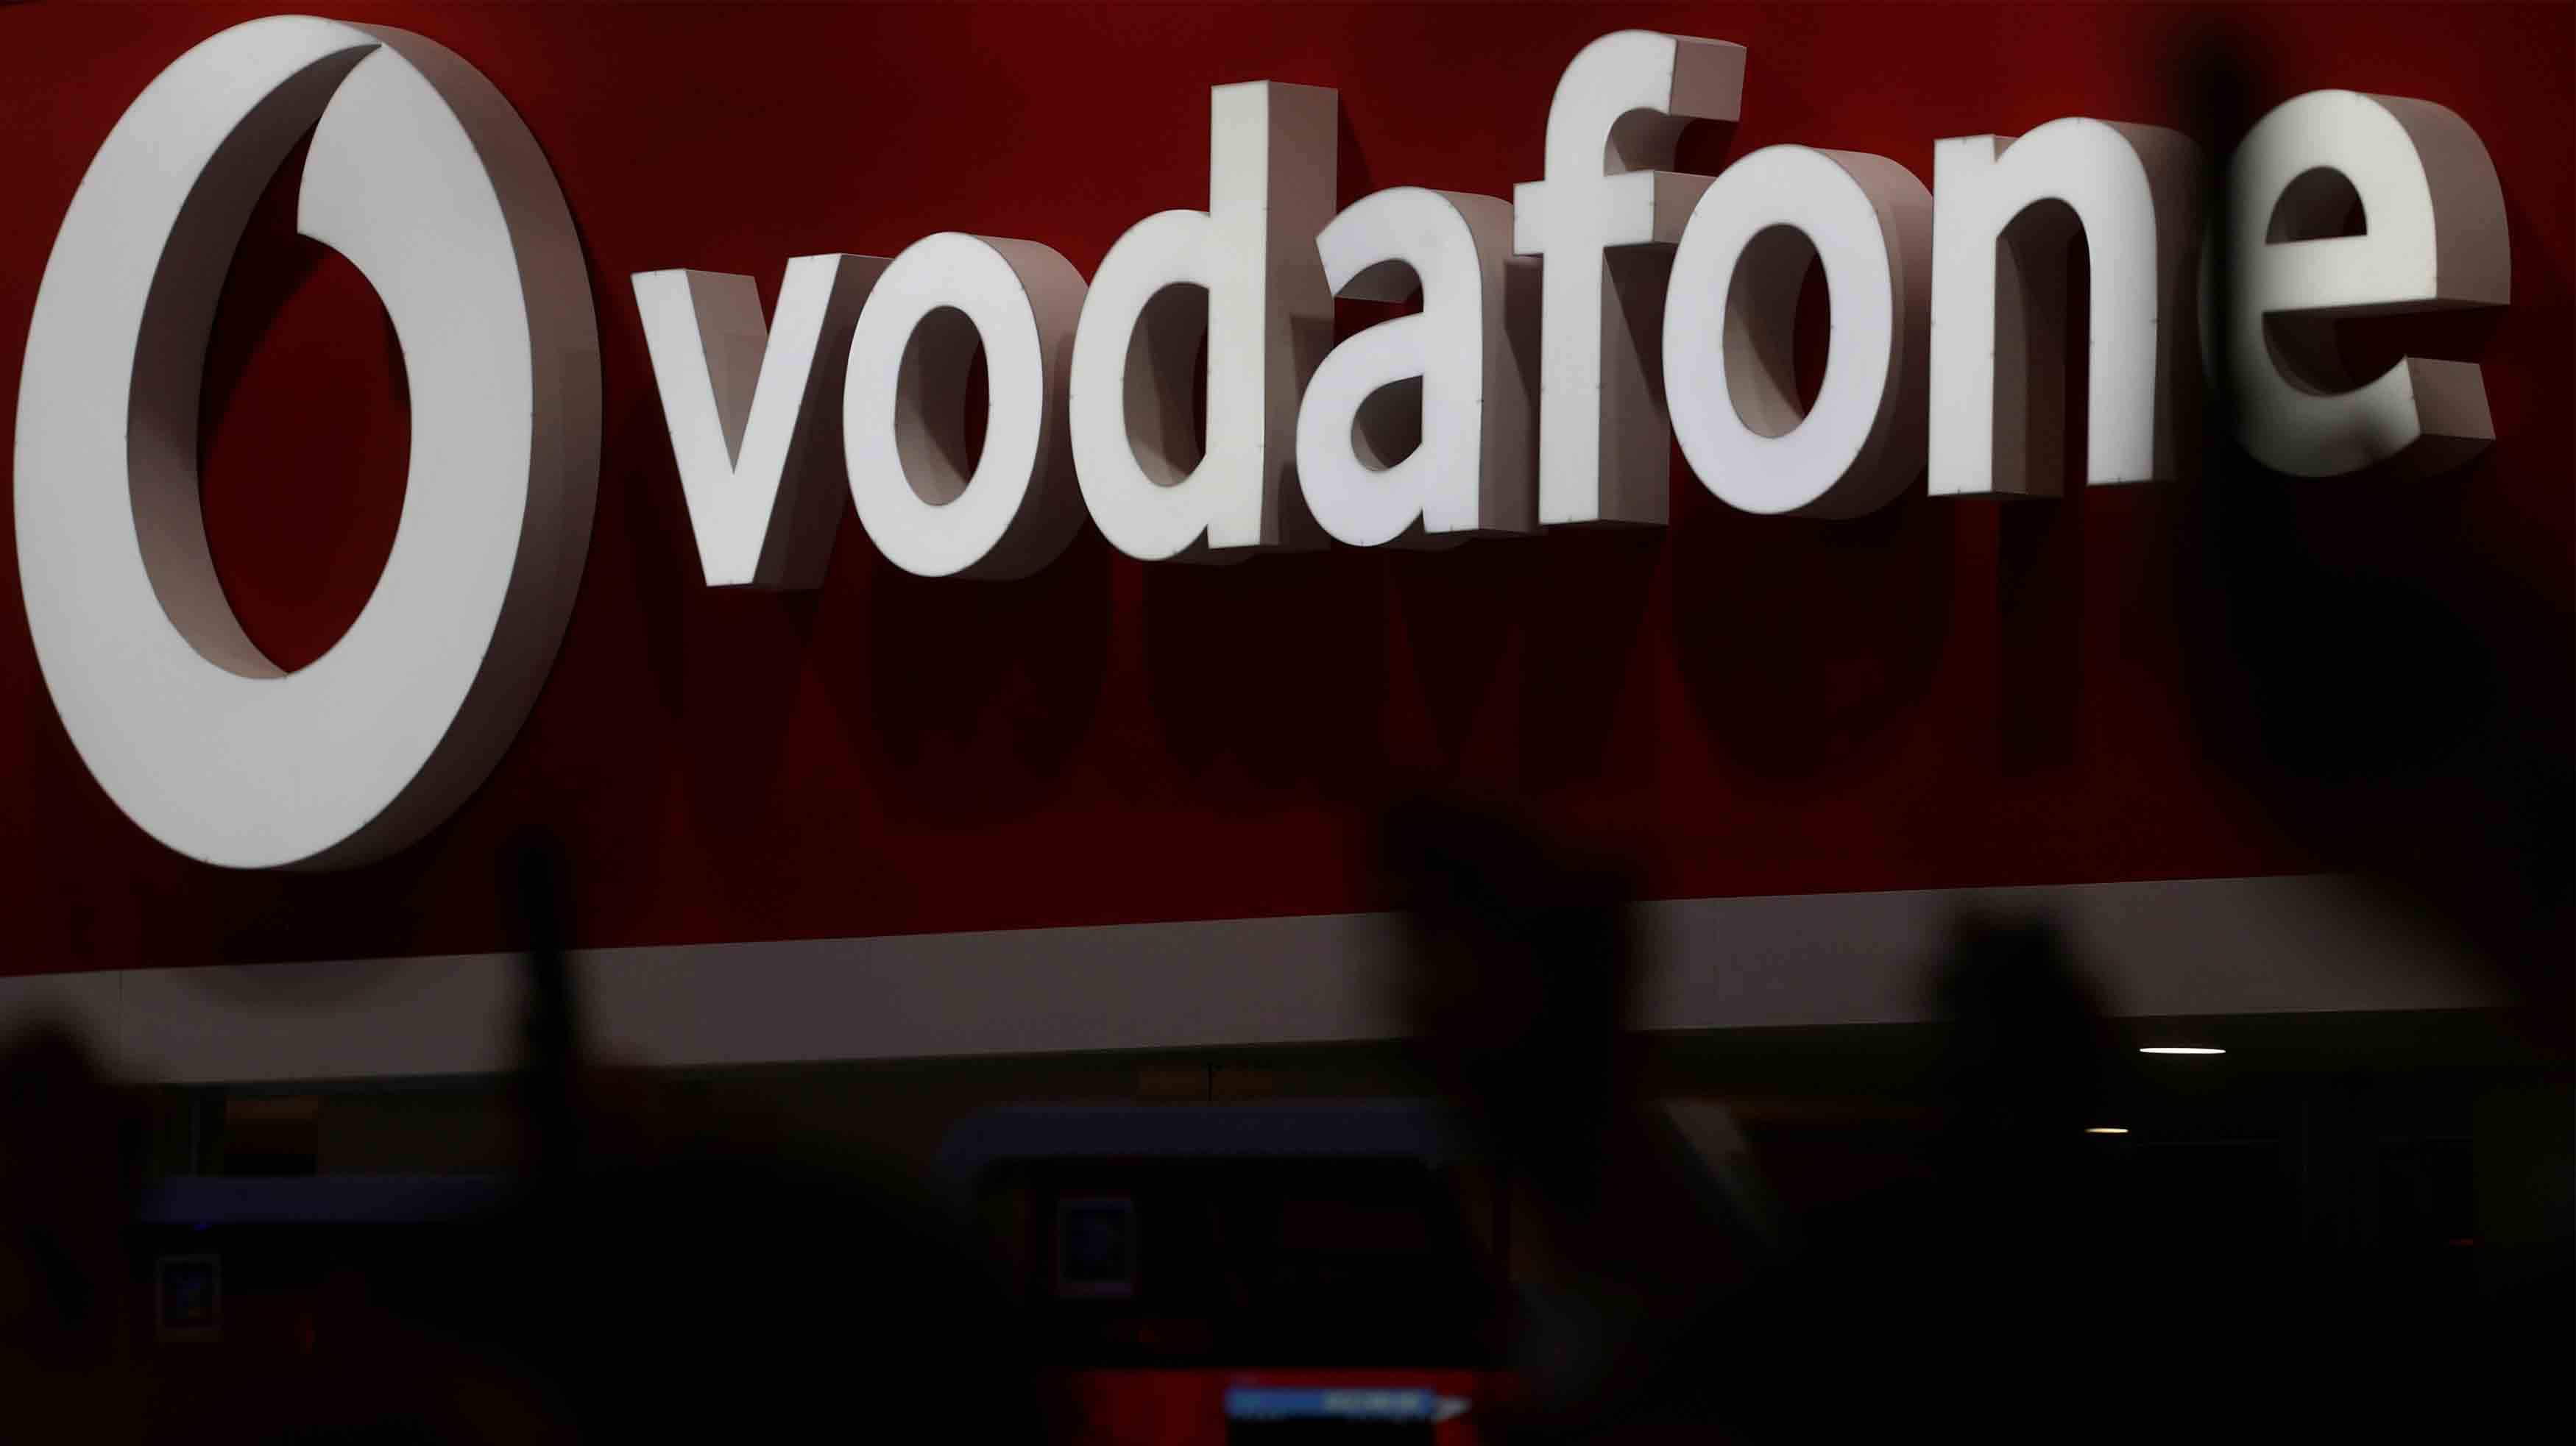 Vodafone Idea pays its principal portion of government dues